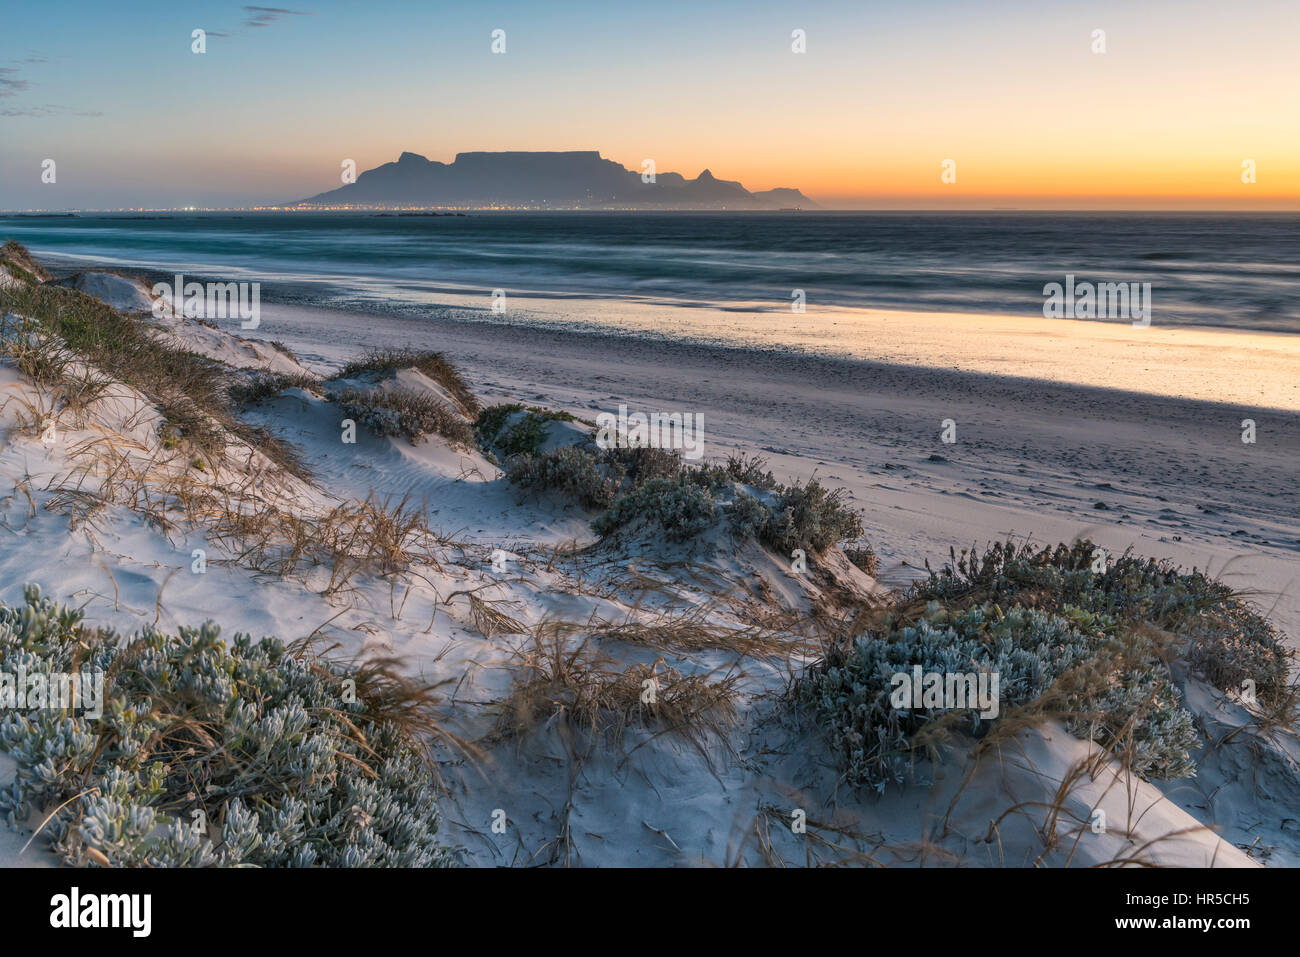 View of Table Mountain at Sunset from Big Bay, Bloubergstrand, Cape Town, South Africa - Stock Image